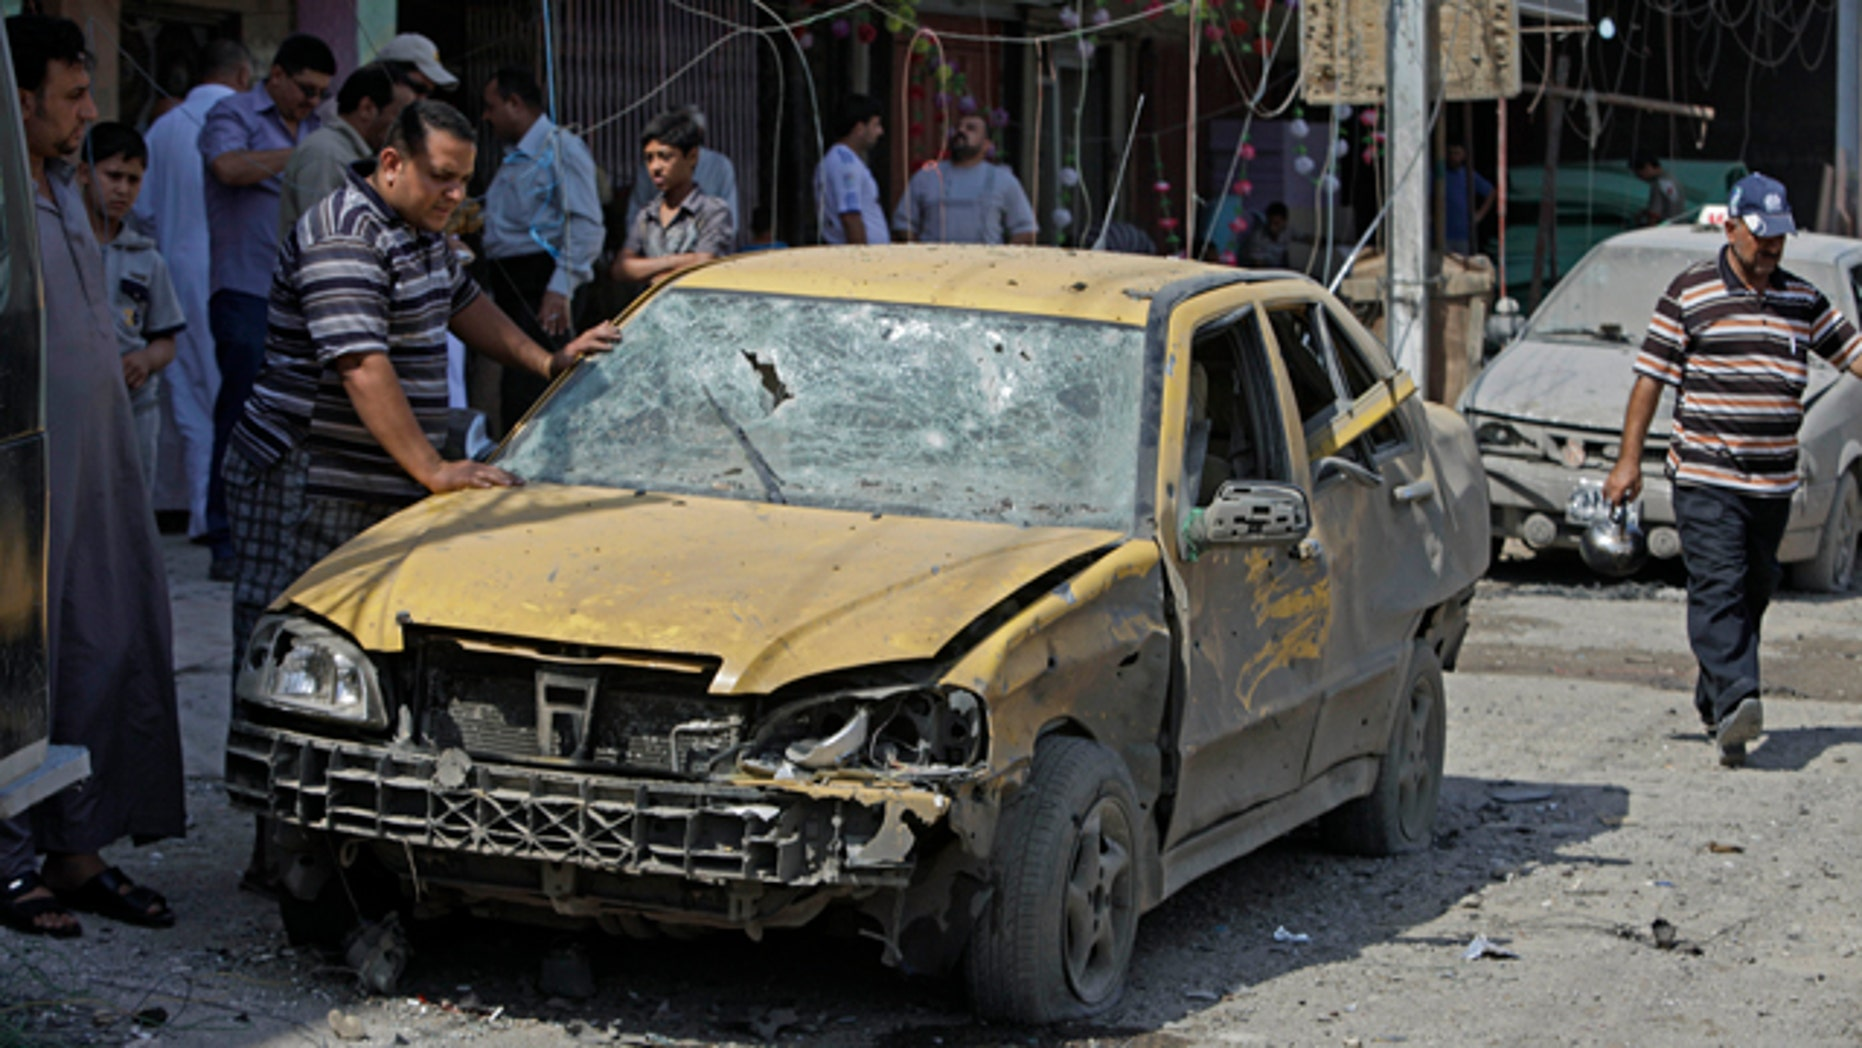 June 20: People inspect at the scene a car bomb attack in Baghdad, Iraq.